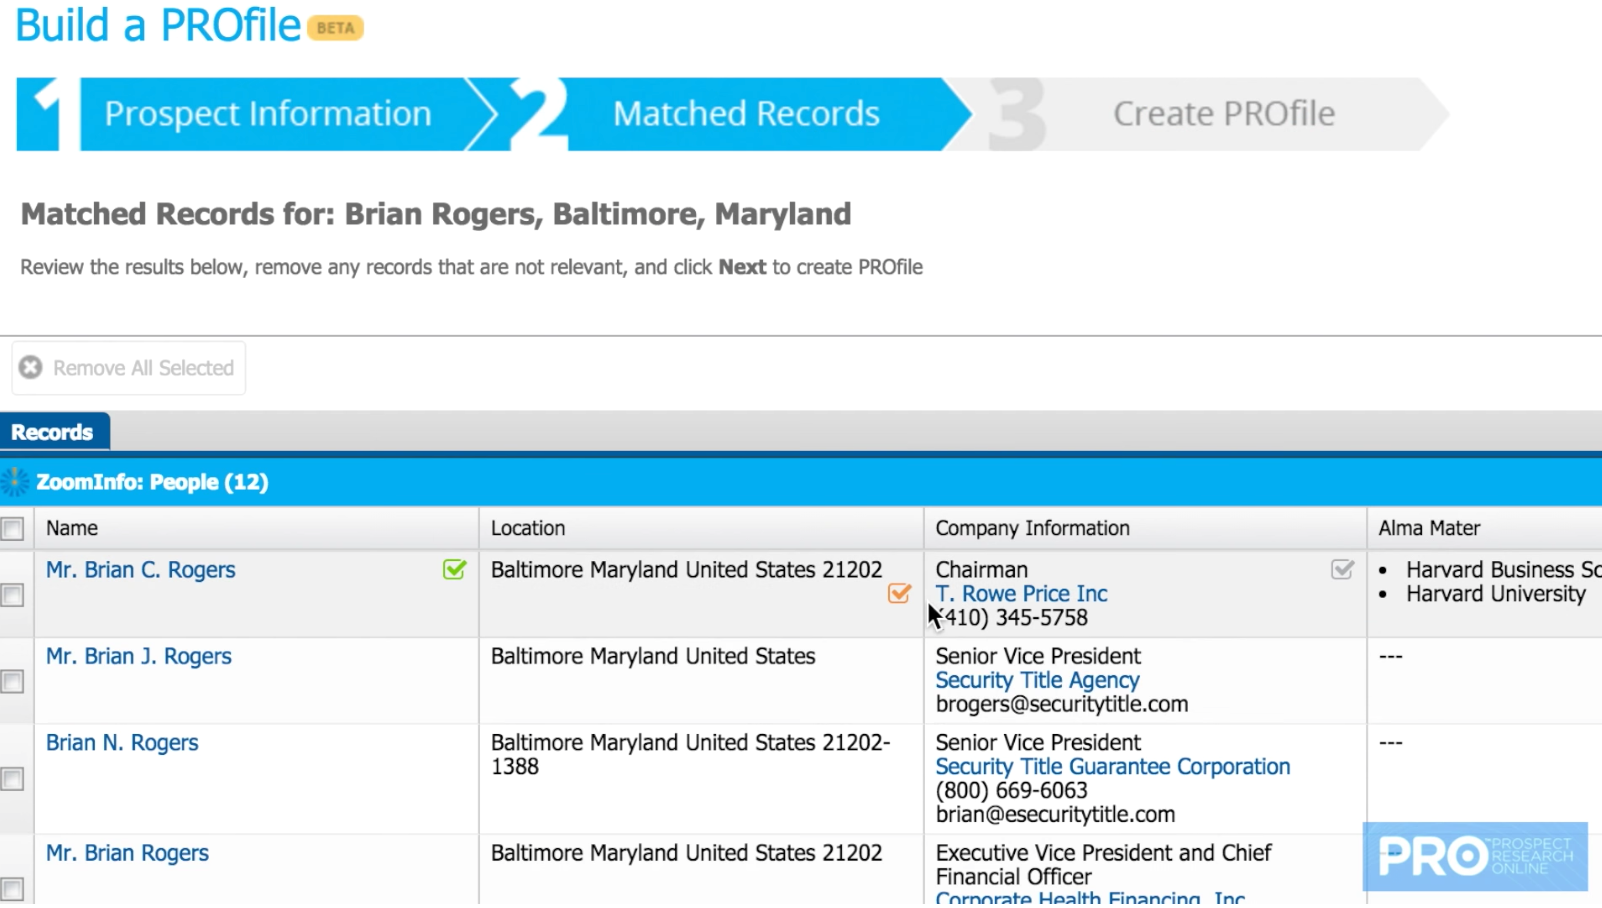 Entered details are matched with records automatically, and users select which records to use